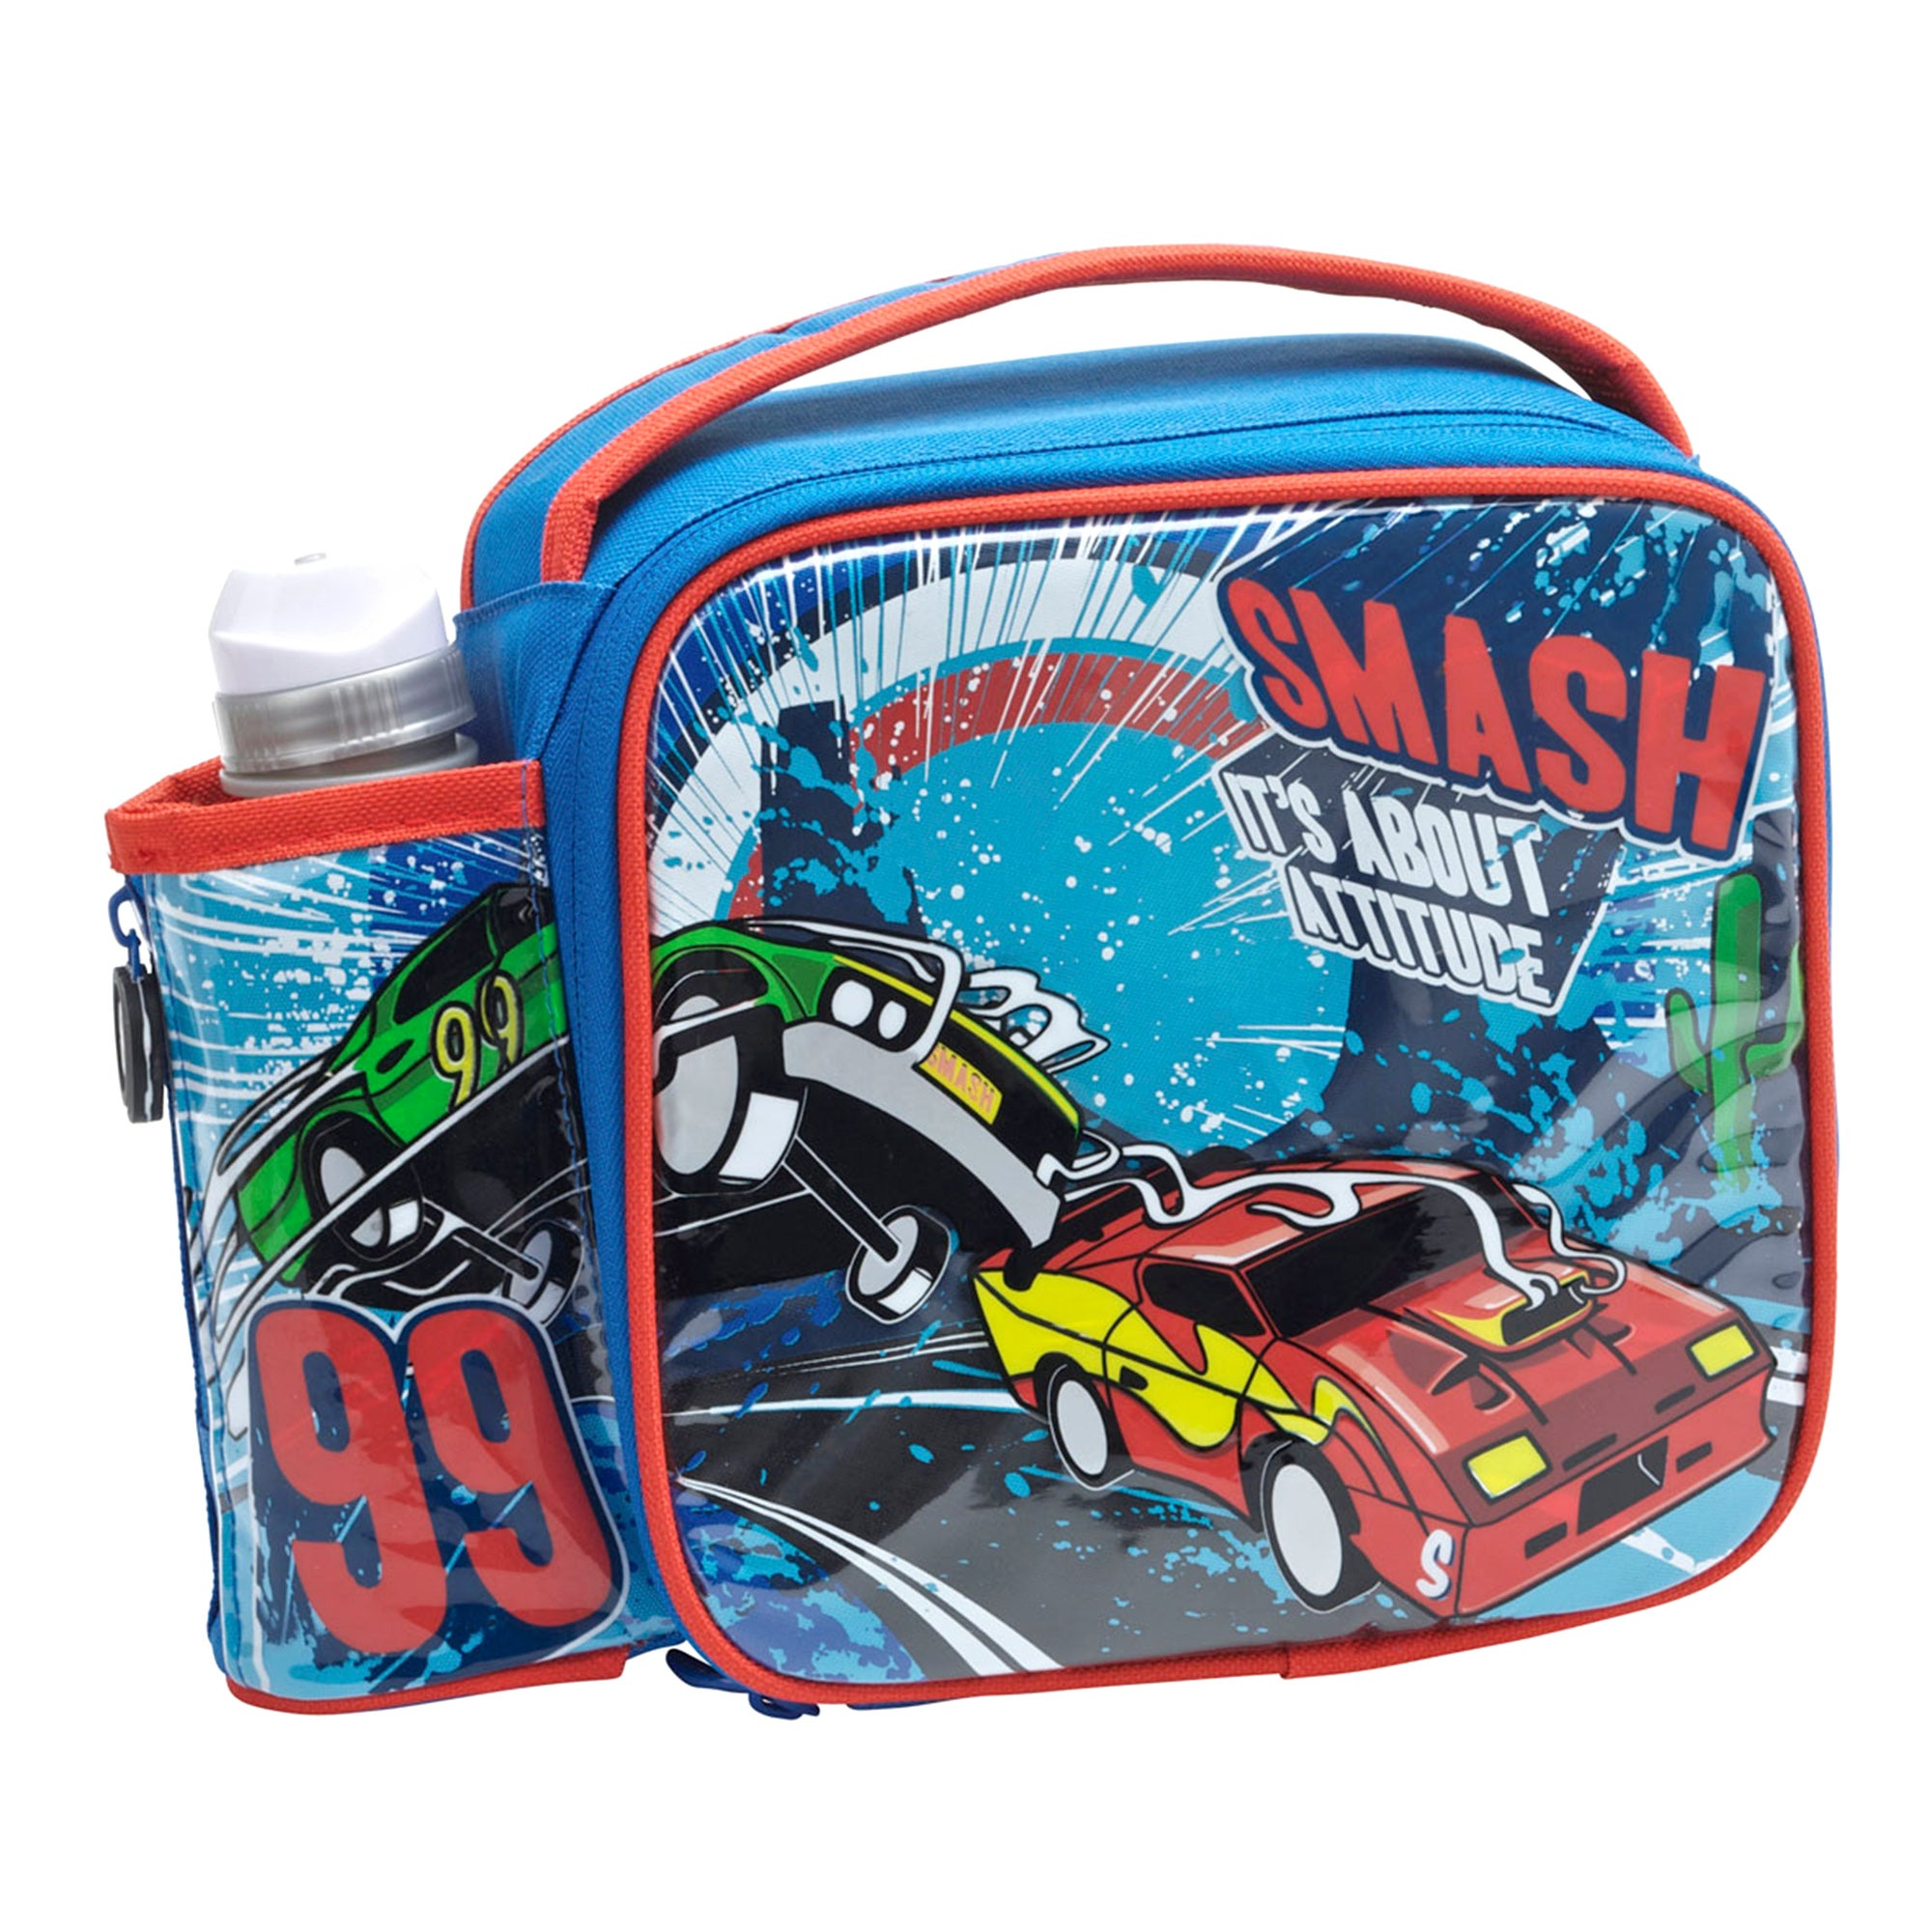 Smash Exhaust Lunchbag and Bottle Set